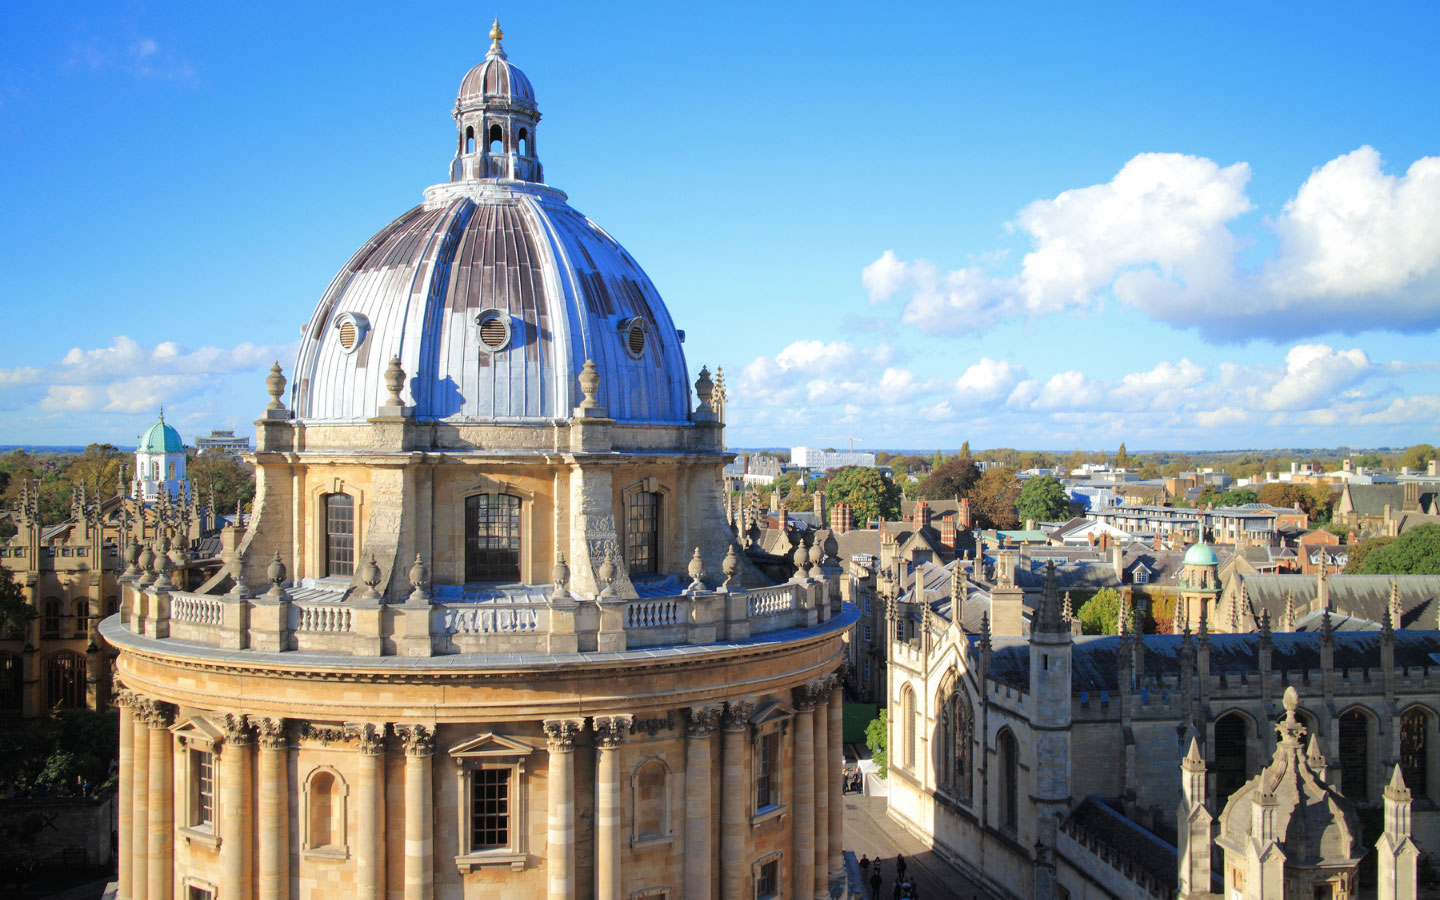 The Radcliffe Camera in Oxford [photo credit Canva]